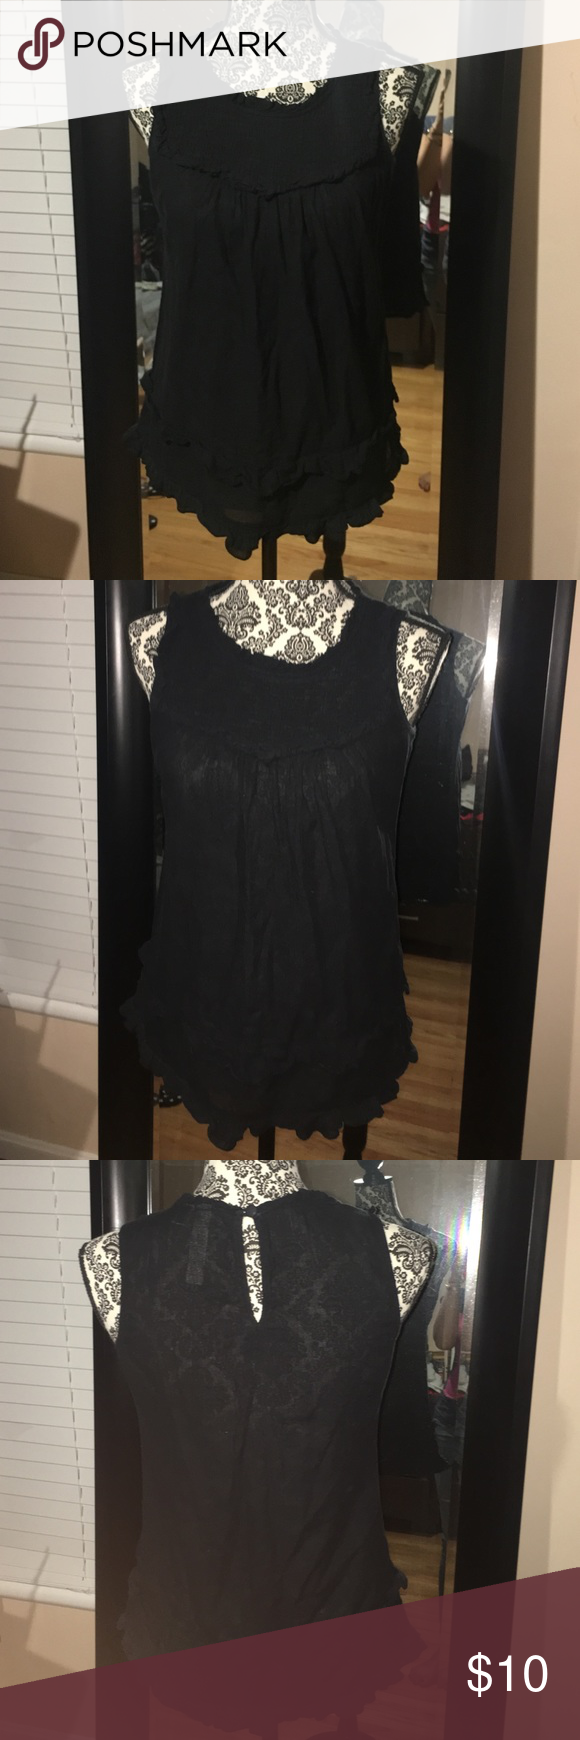 Light summer top Light and airy summer top. EUC, size medium. I always get lots of compliments when wearing this cute piece❤️ Eyeshadow Tops